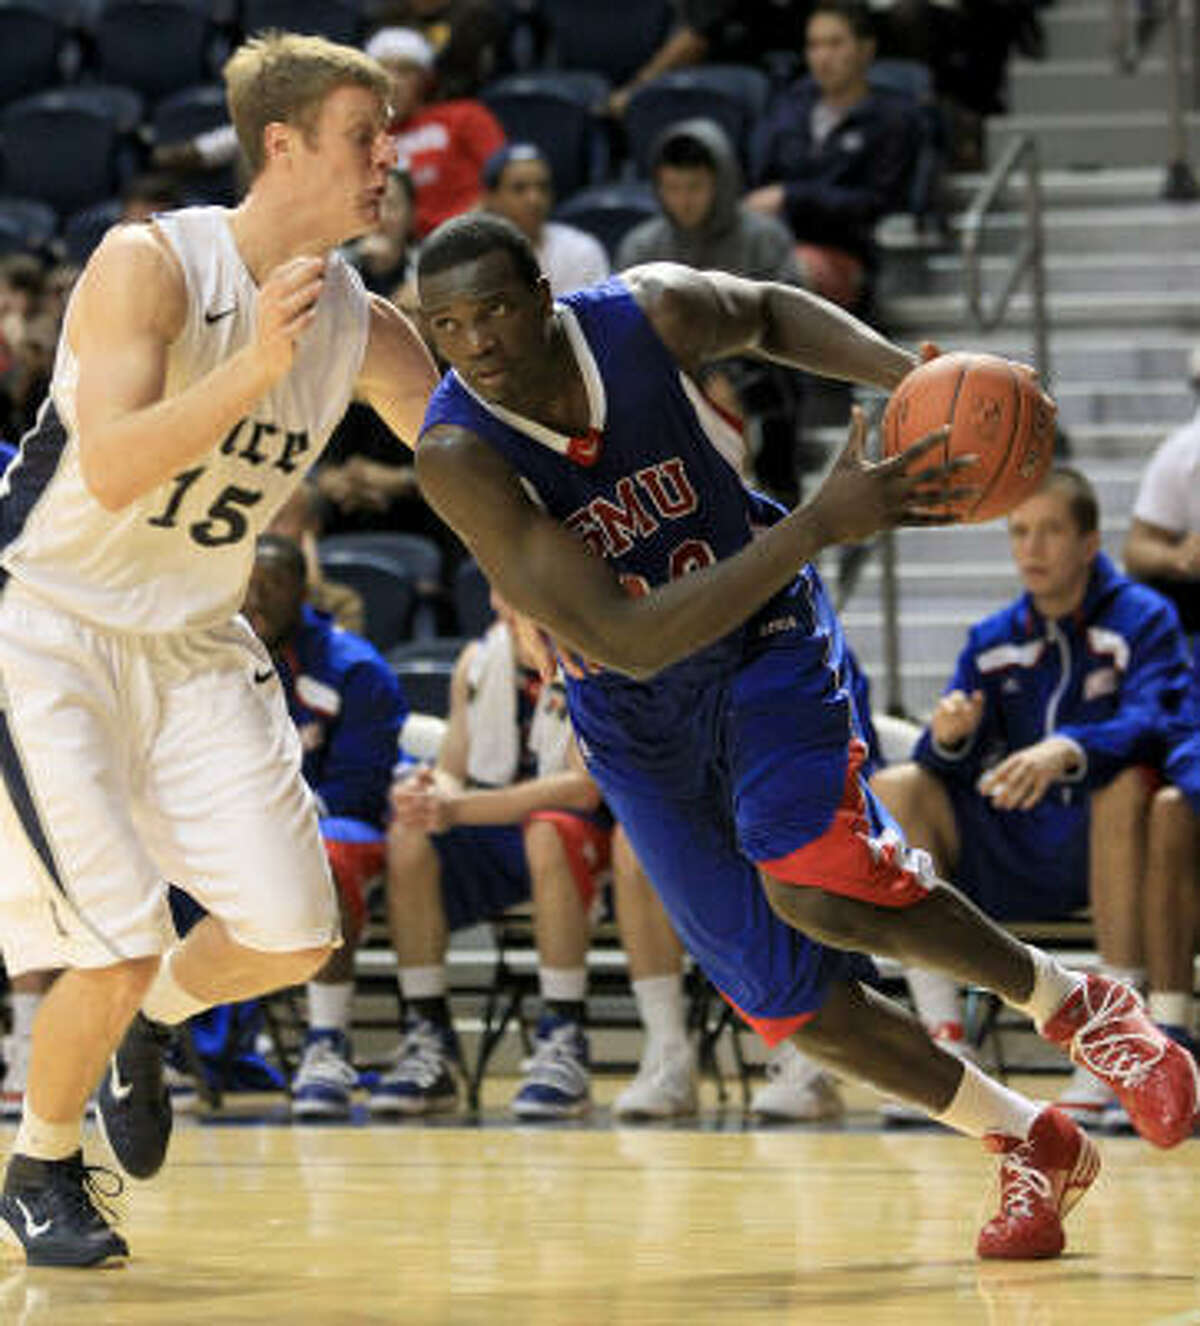 SMU forward Papa Dia drives around Owls center Trey Stanton (15) during the second half. Dia finished with 19 points and three blocks.